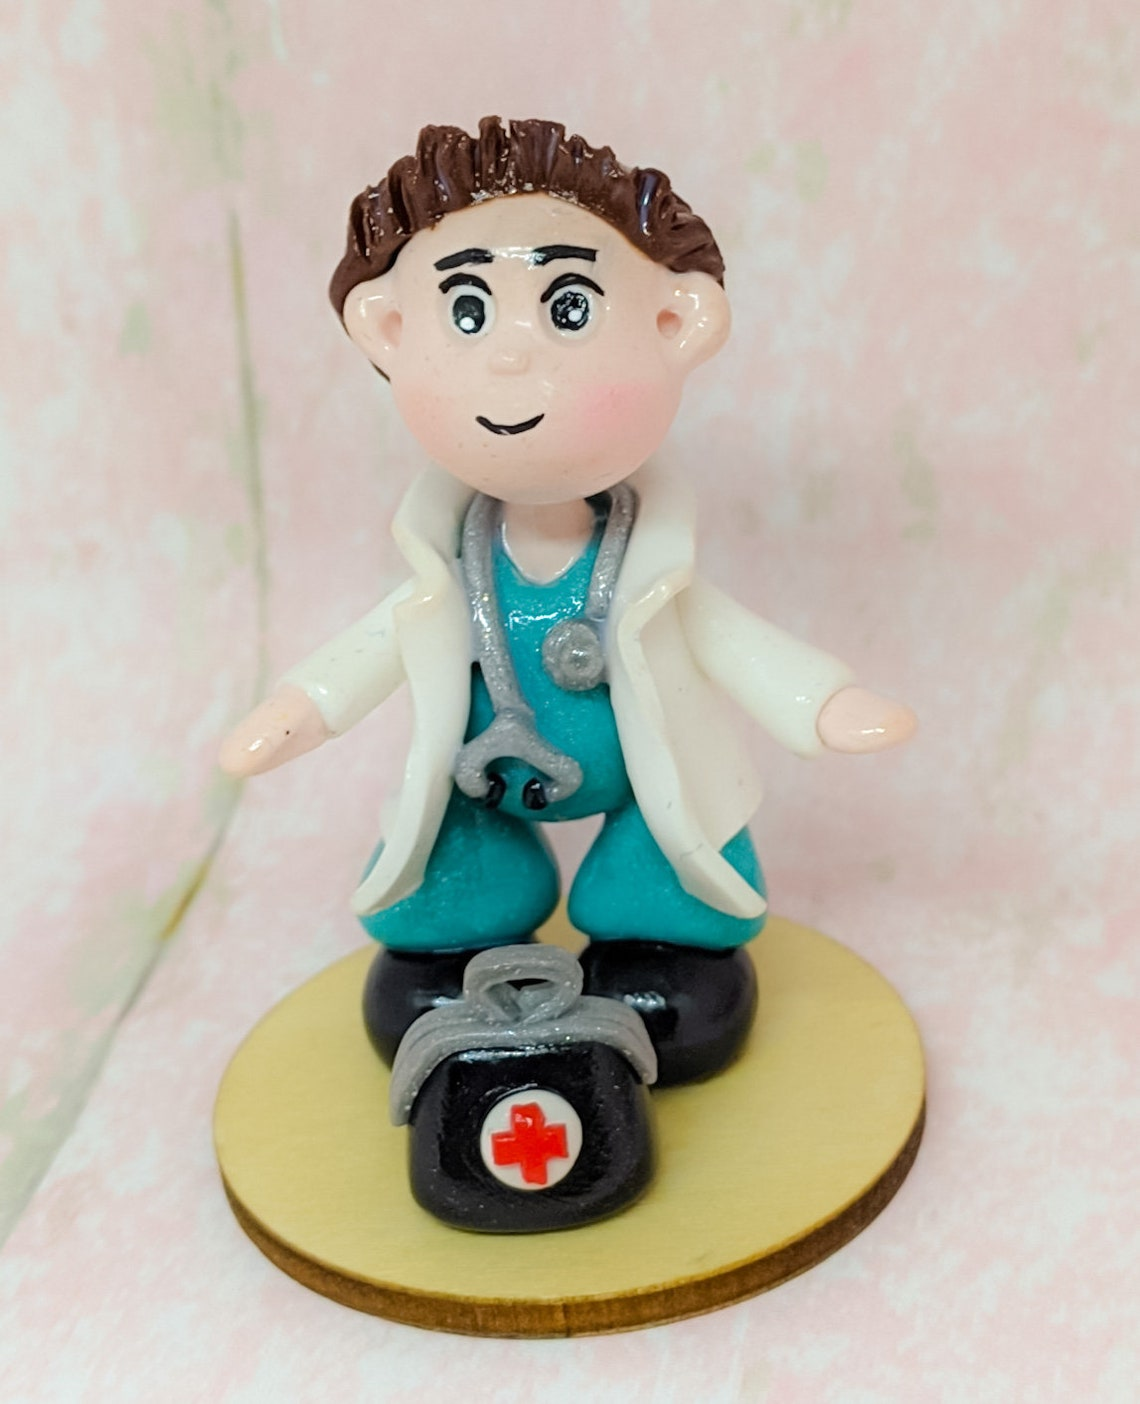 a clay doctor figurine.